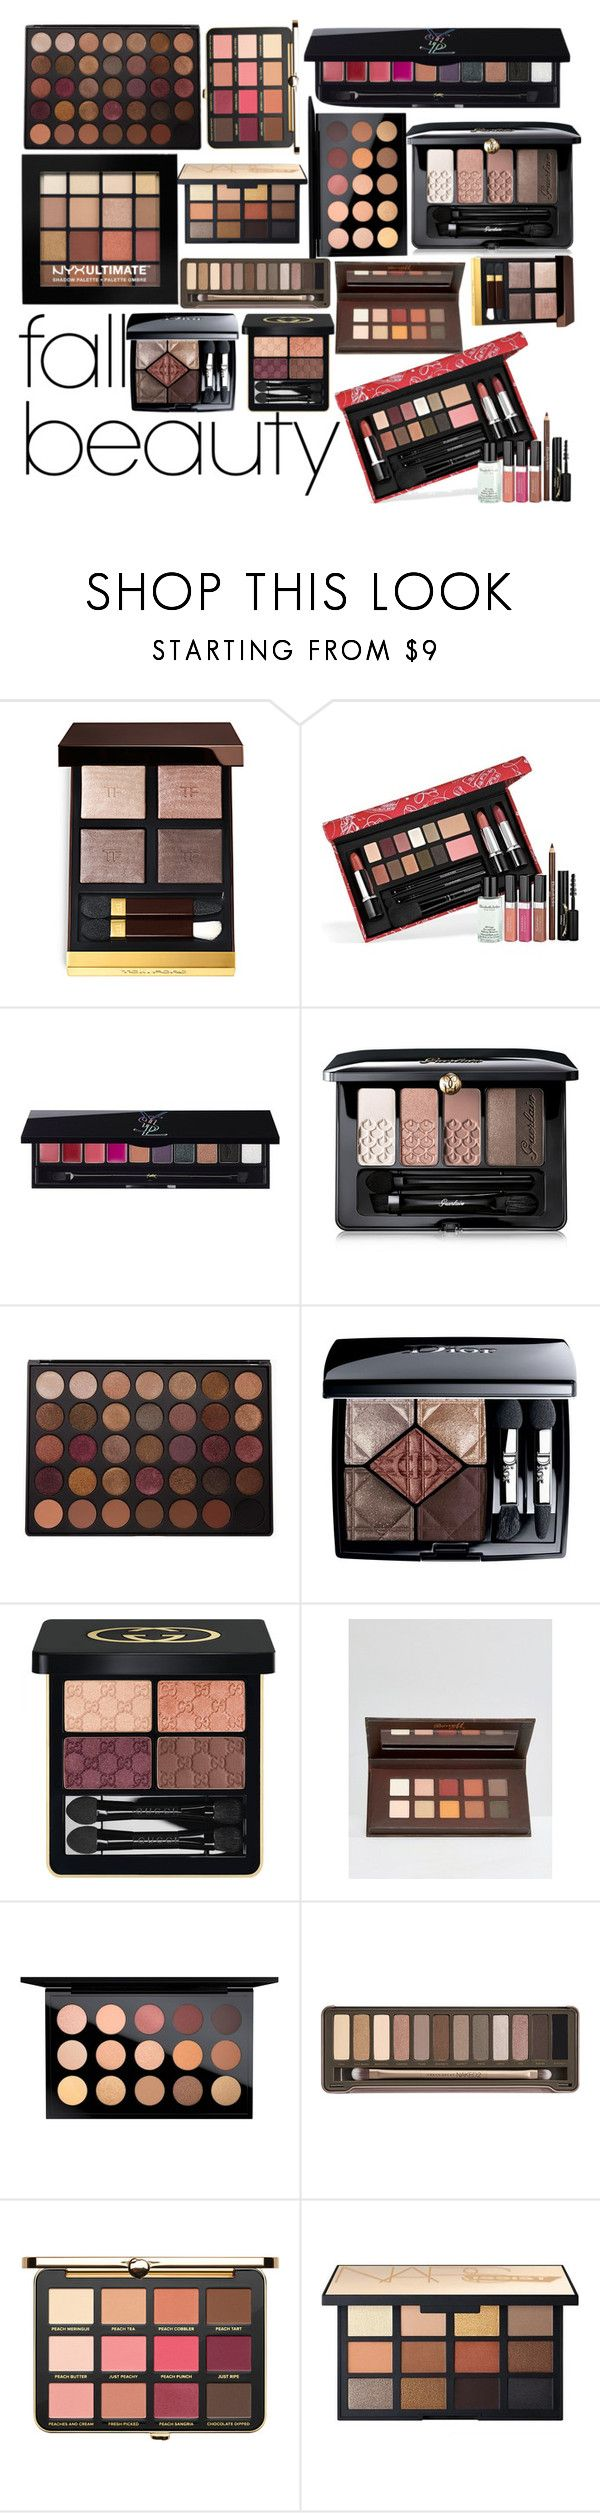 """""""Fall Eyeshadow Palettes"""" by lily-mitchell ❤ liked on Polyvore featuring beauty, Elizabeth Arden, Yves Saint Laurent, Guerlain, Morphe, Christian Dior, Gucci, Barry M, MAC Cosmetics and Urban Decay"""